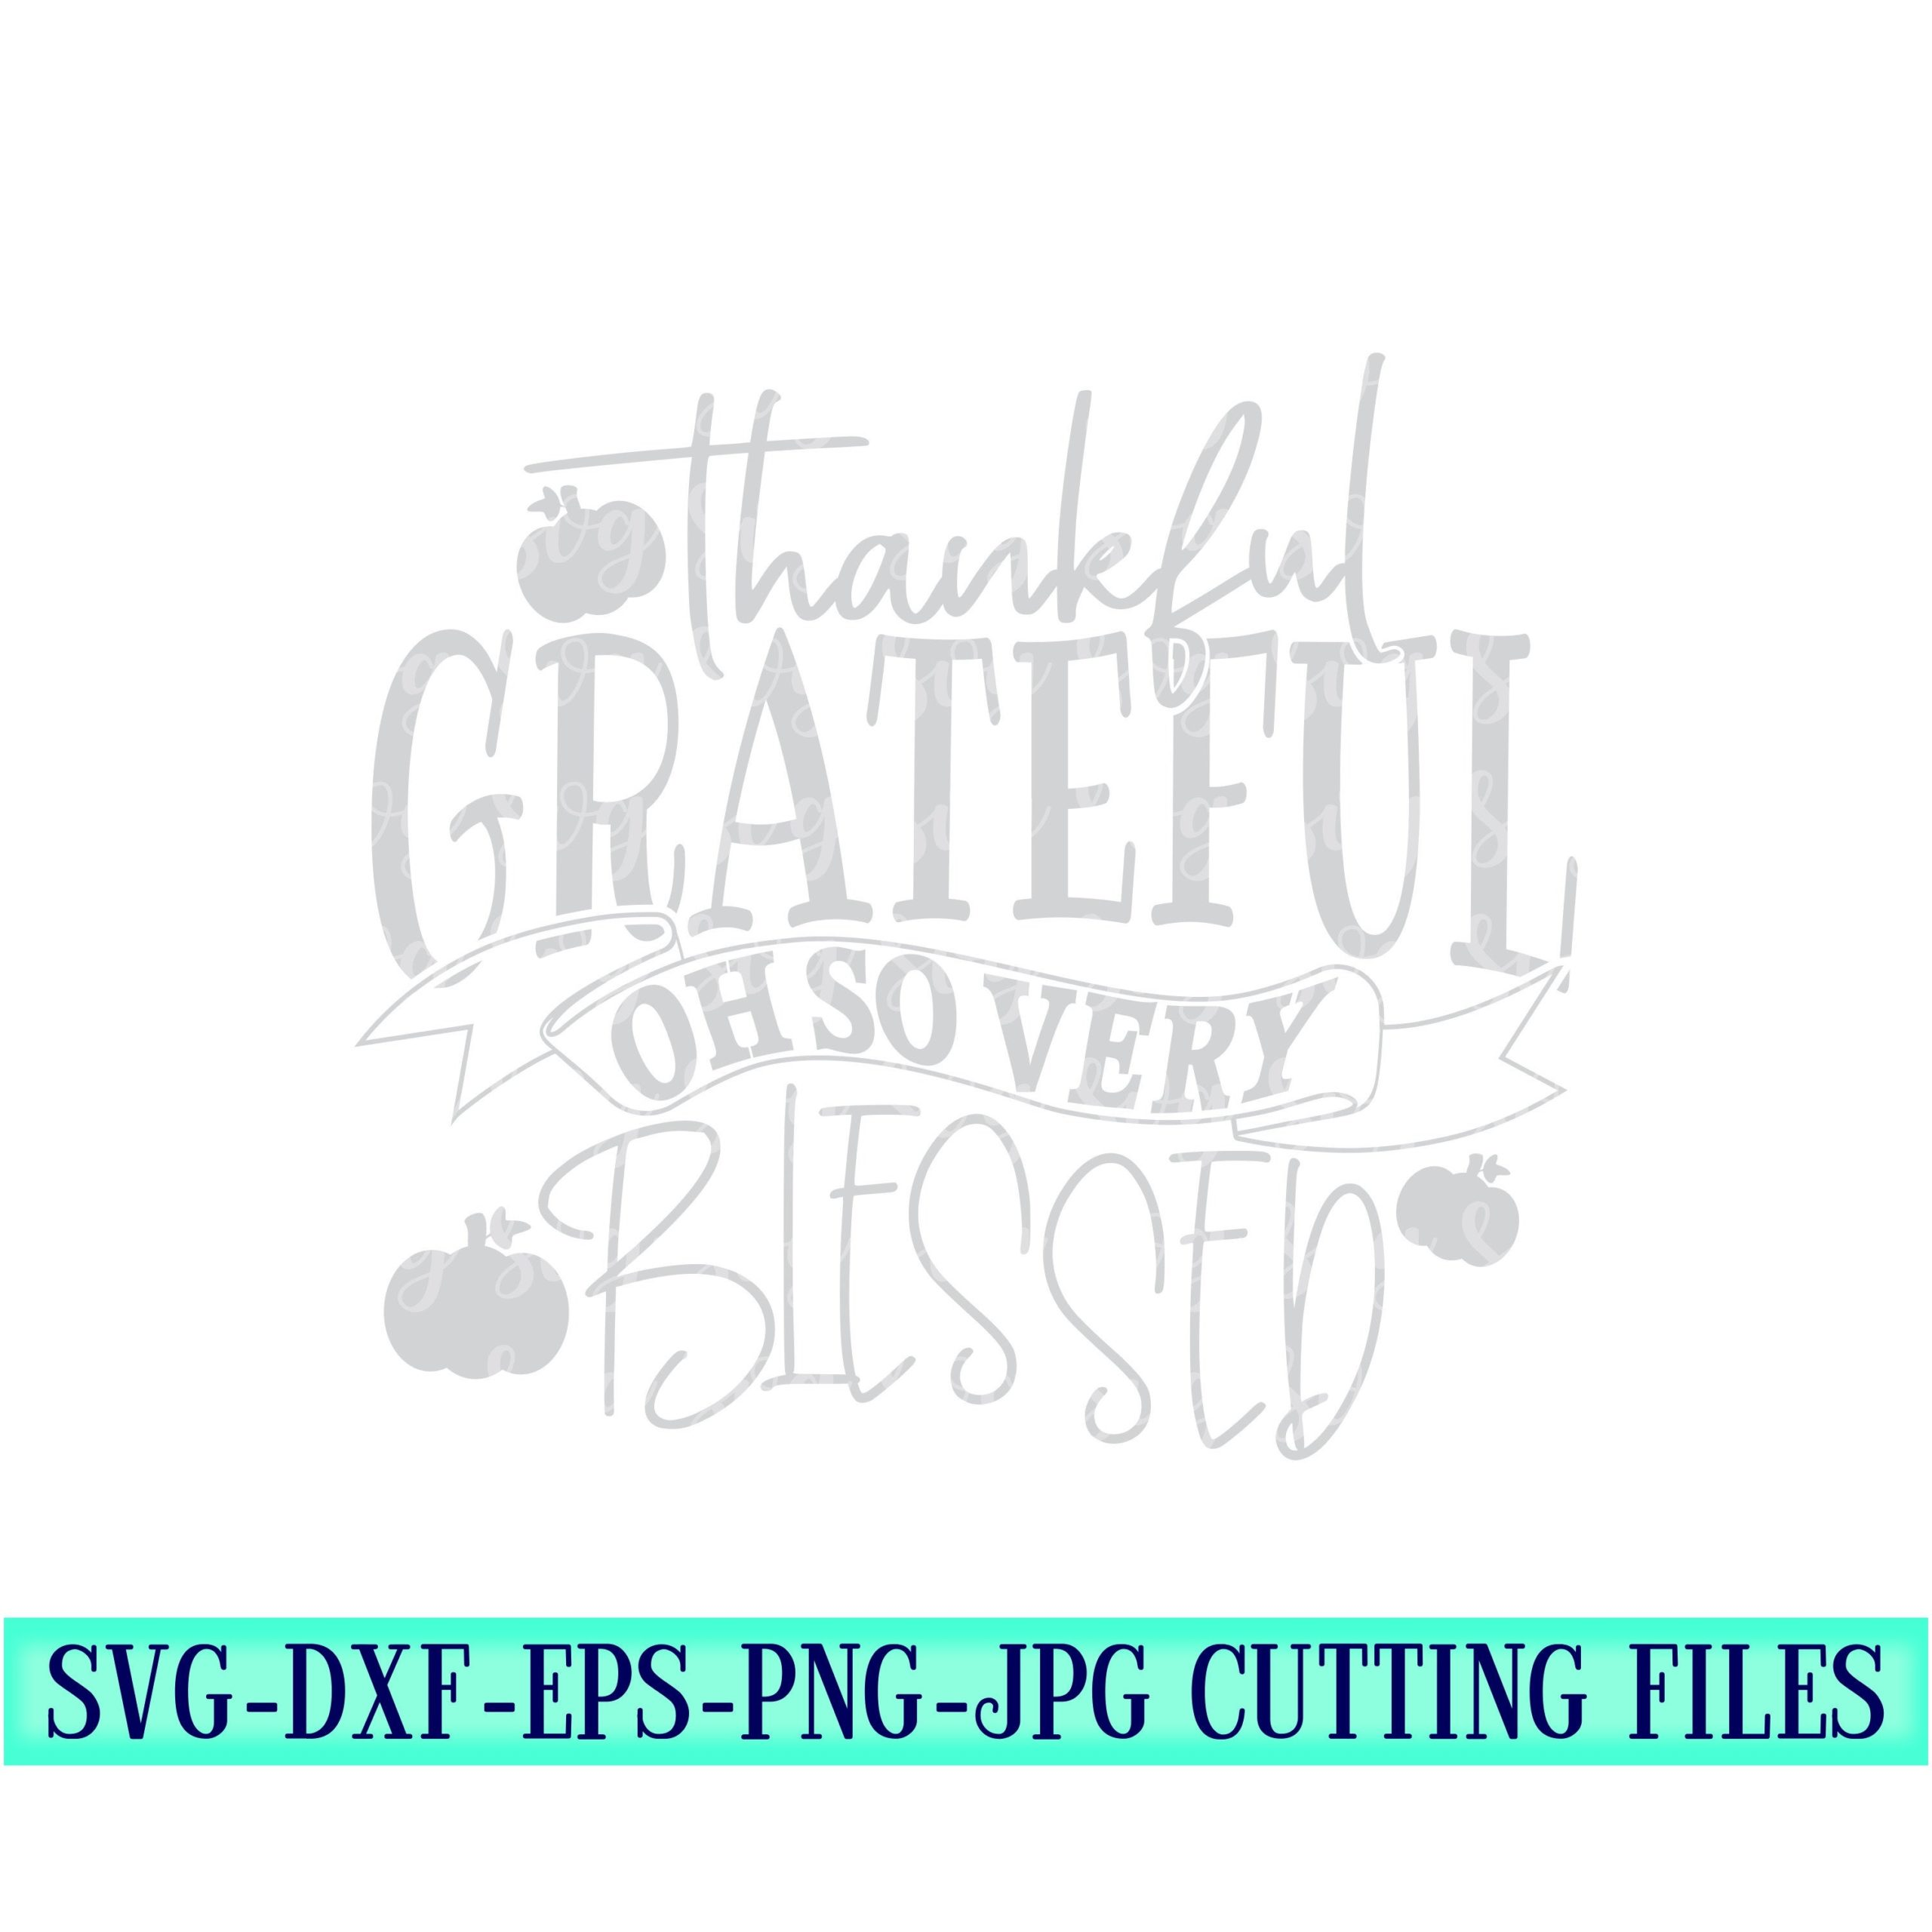 Grateful-and-blessed-svgpumpkin-svg-falling-leaves-svg-fall-svg-pumpkins-svg-fall-weather-svgfall-svg-designcricut-svgsvg-for-mobile-5f6f6e65